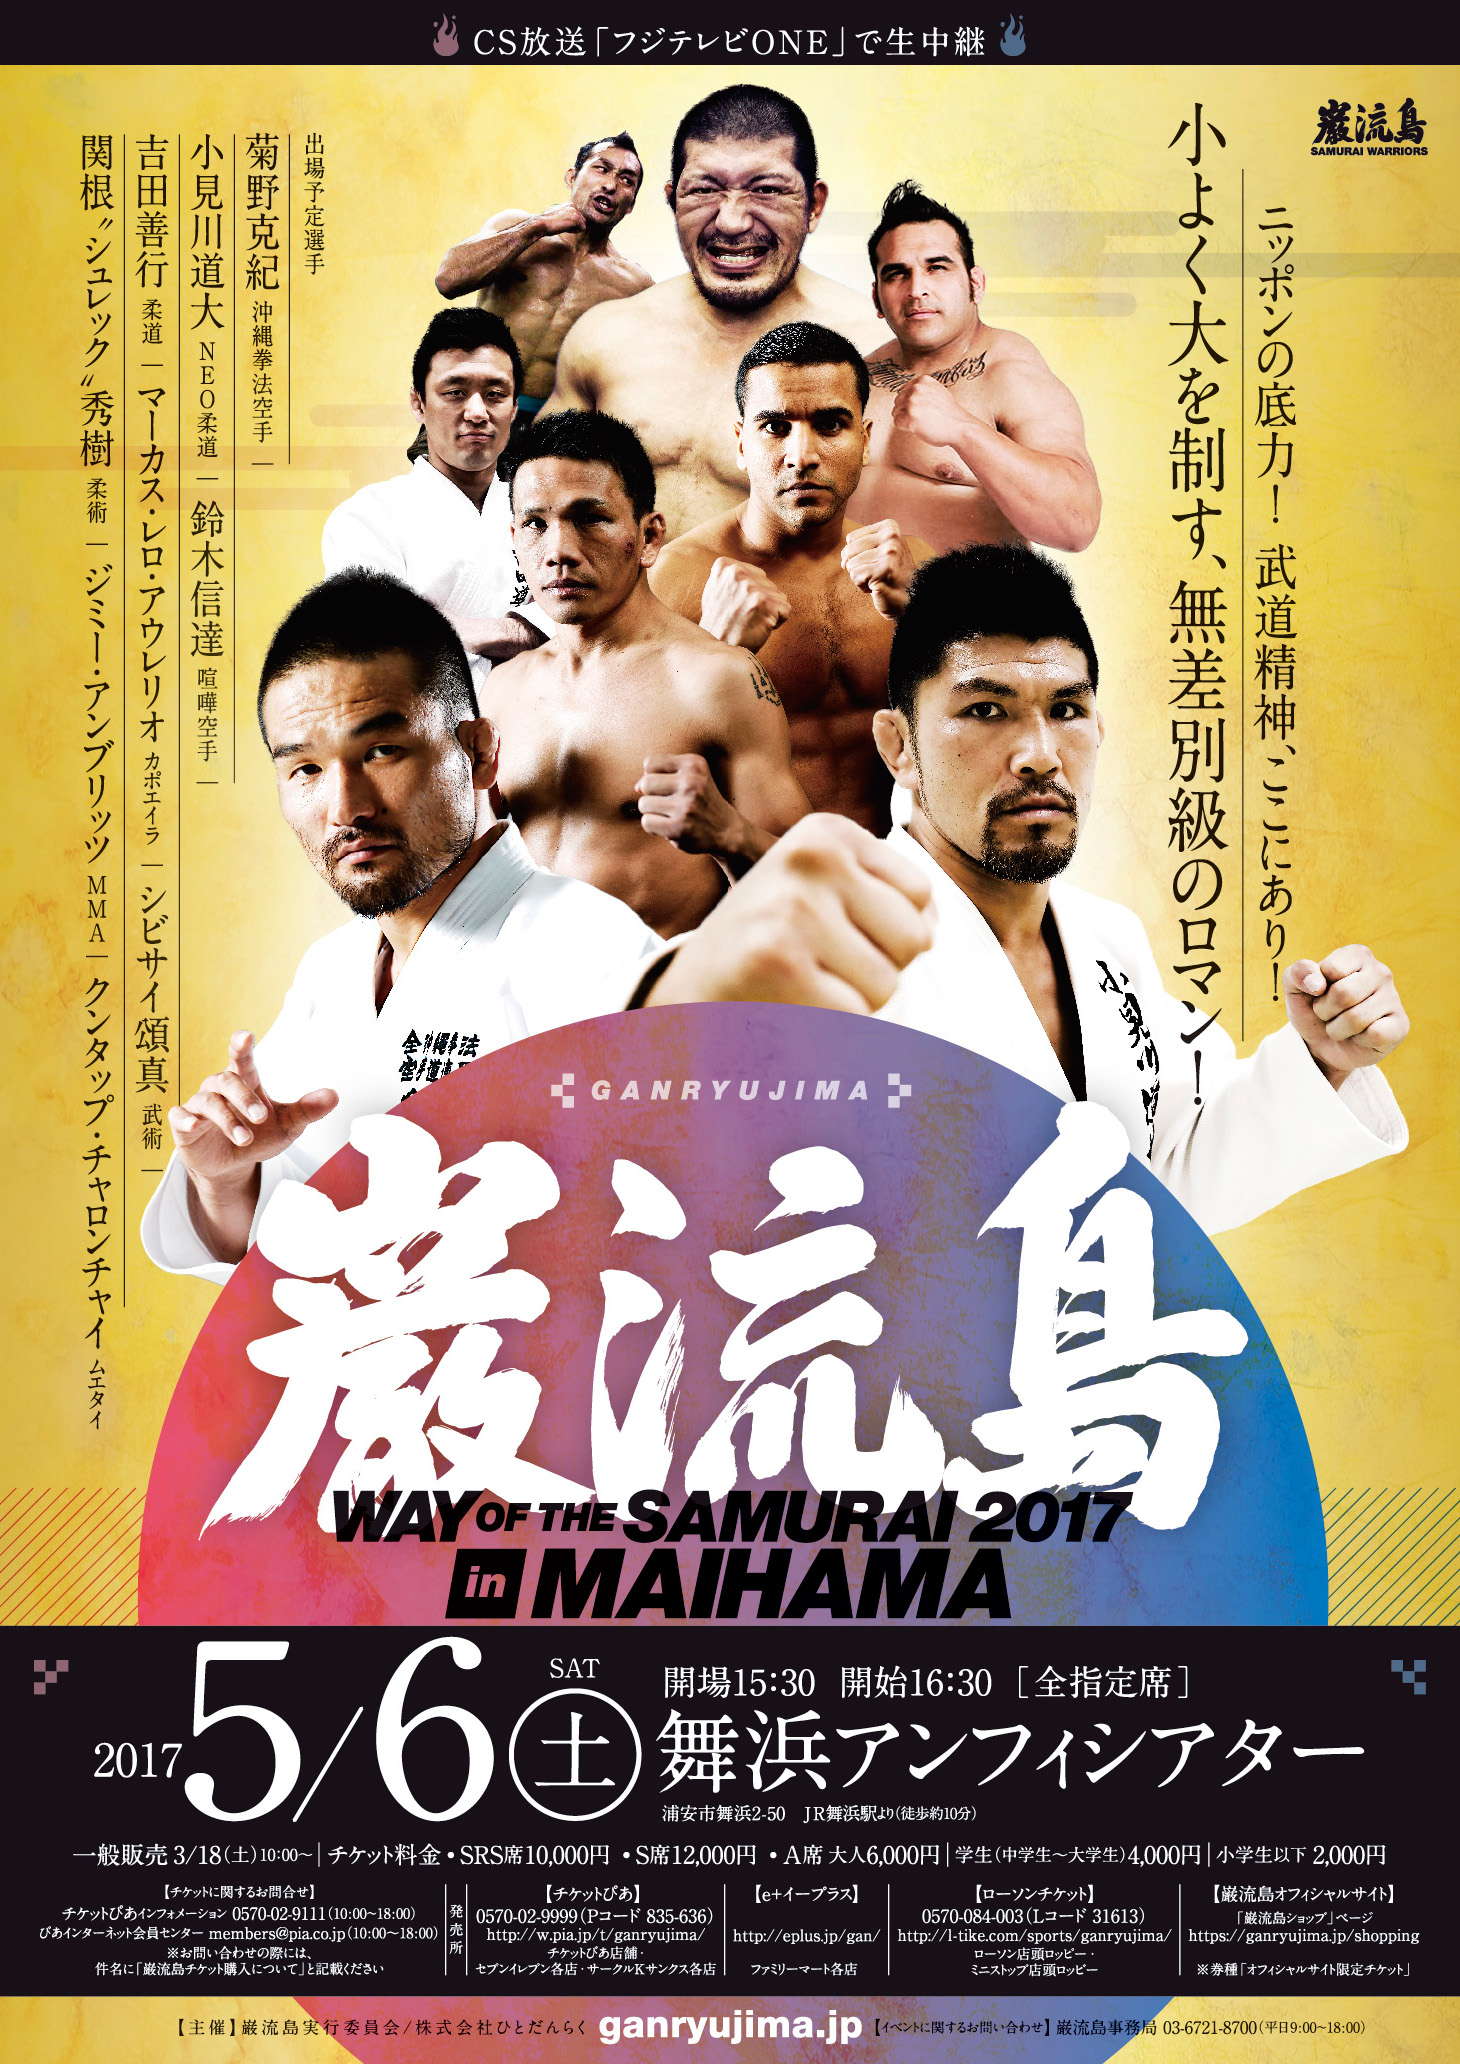 巌流島 WAY OF THE SAMURAI 2017 in MAIHAMA